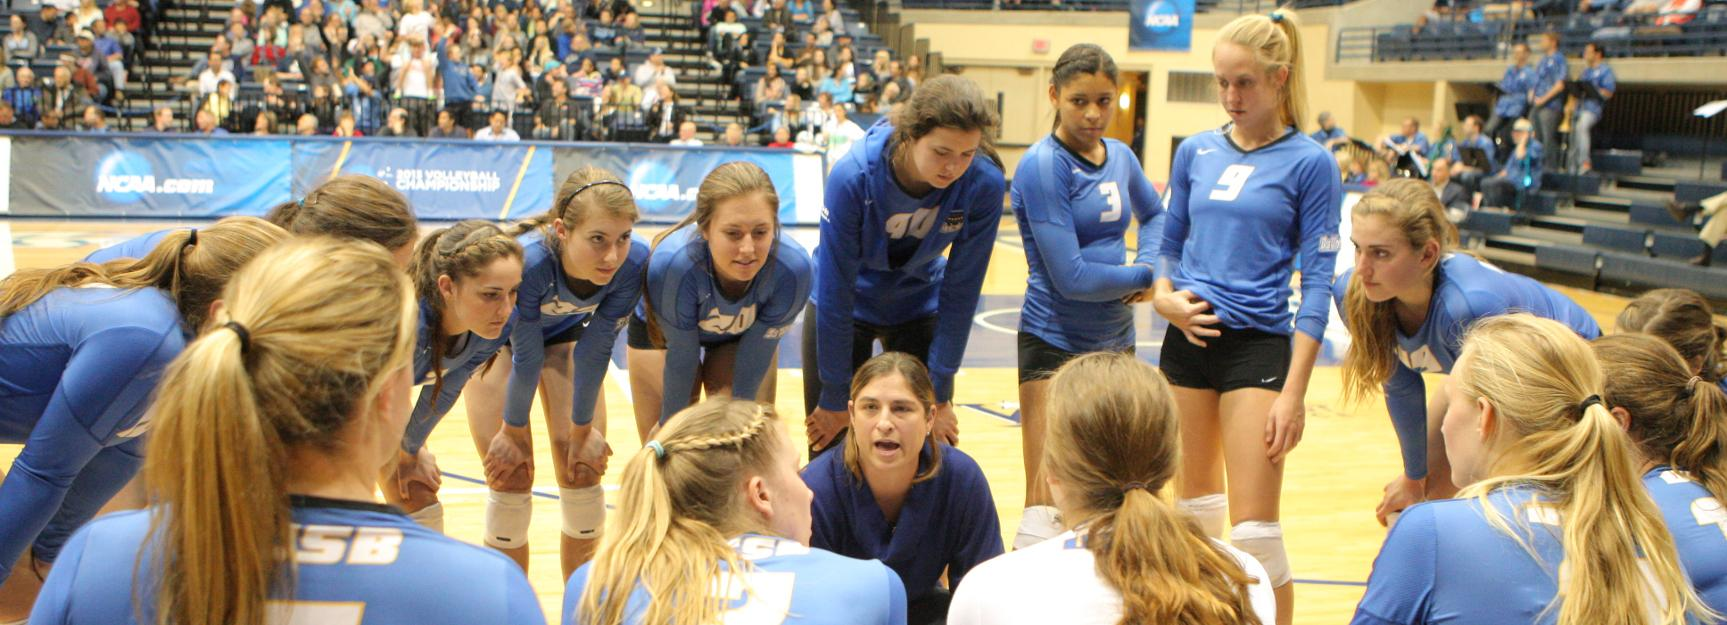 UCSB Falls to San Diego 3-0 in NCAA Tournament